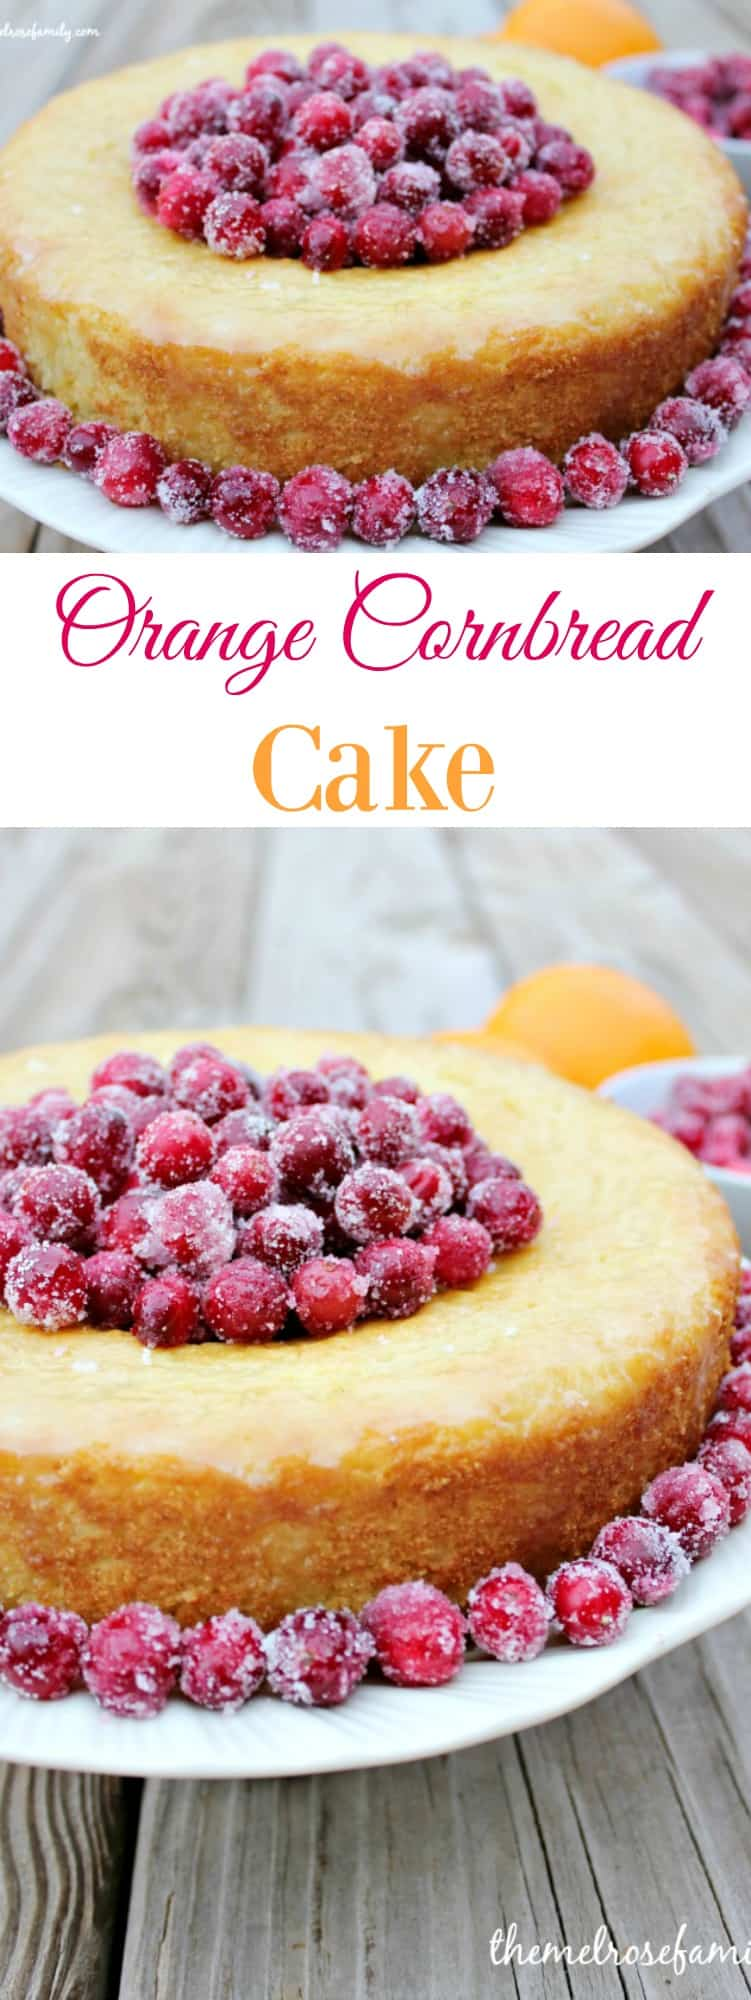 Orange Cornbread Cake with Sugared Cranberries is the perfect cake that's sure to impress.